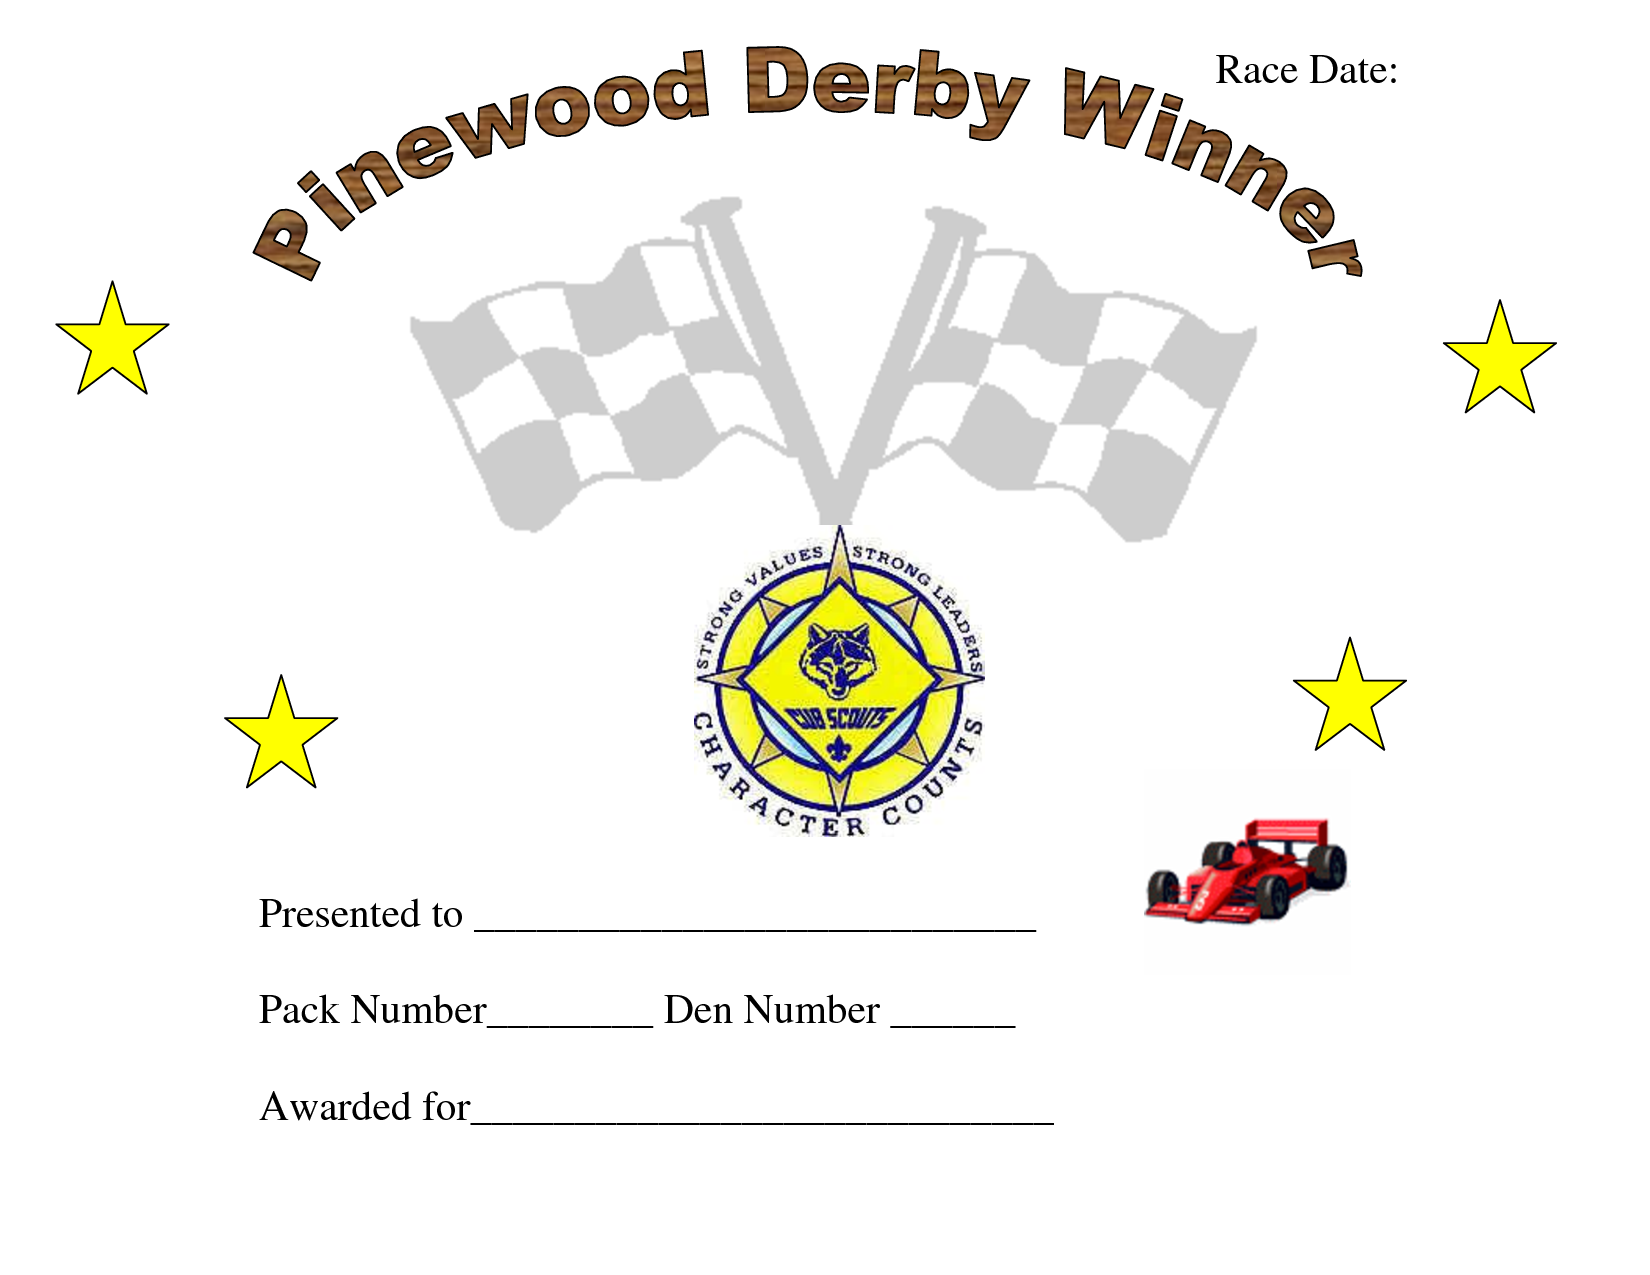 photograph regarding Pinewood Derby Awards Printable identify Pin upon Cub Scouts